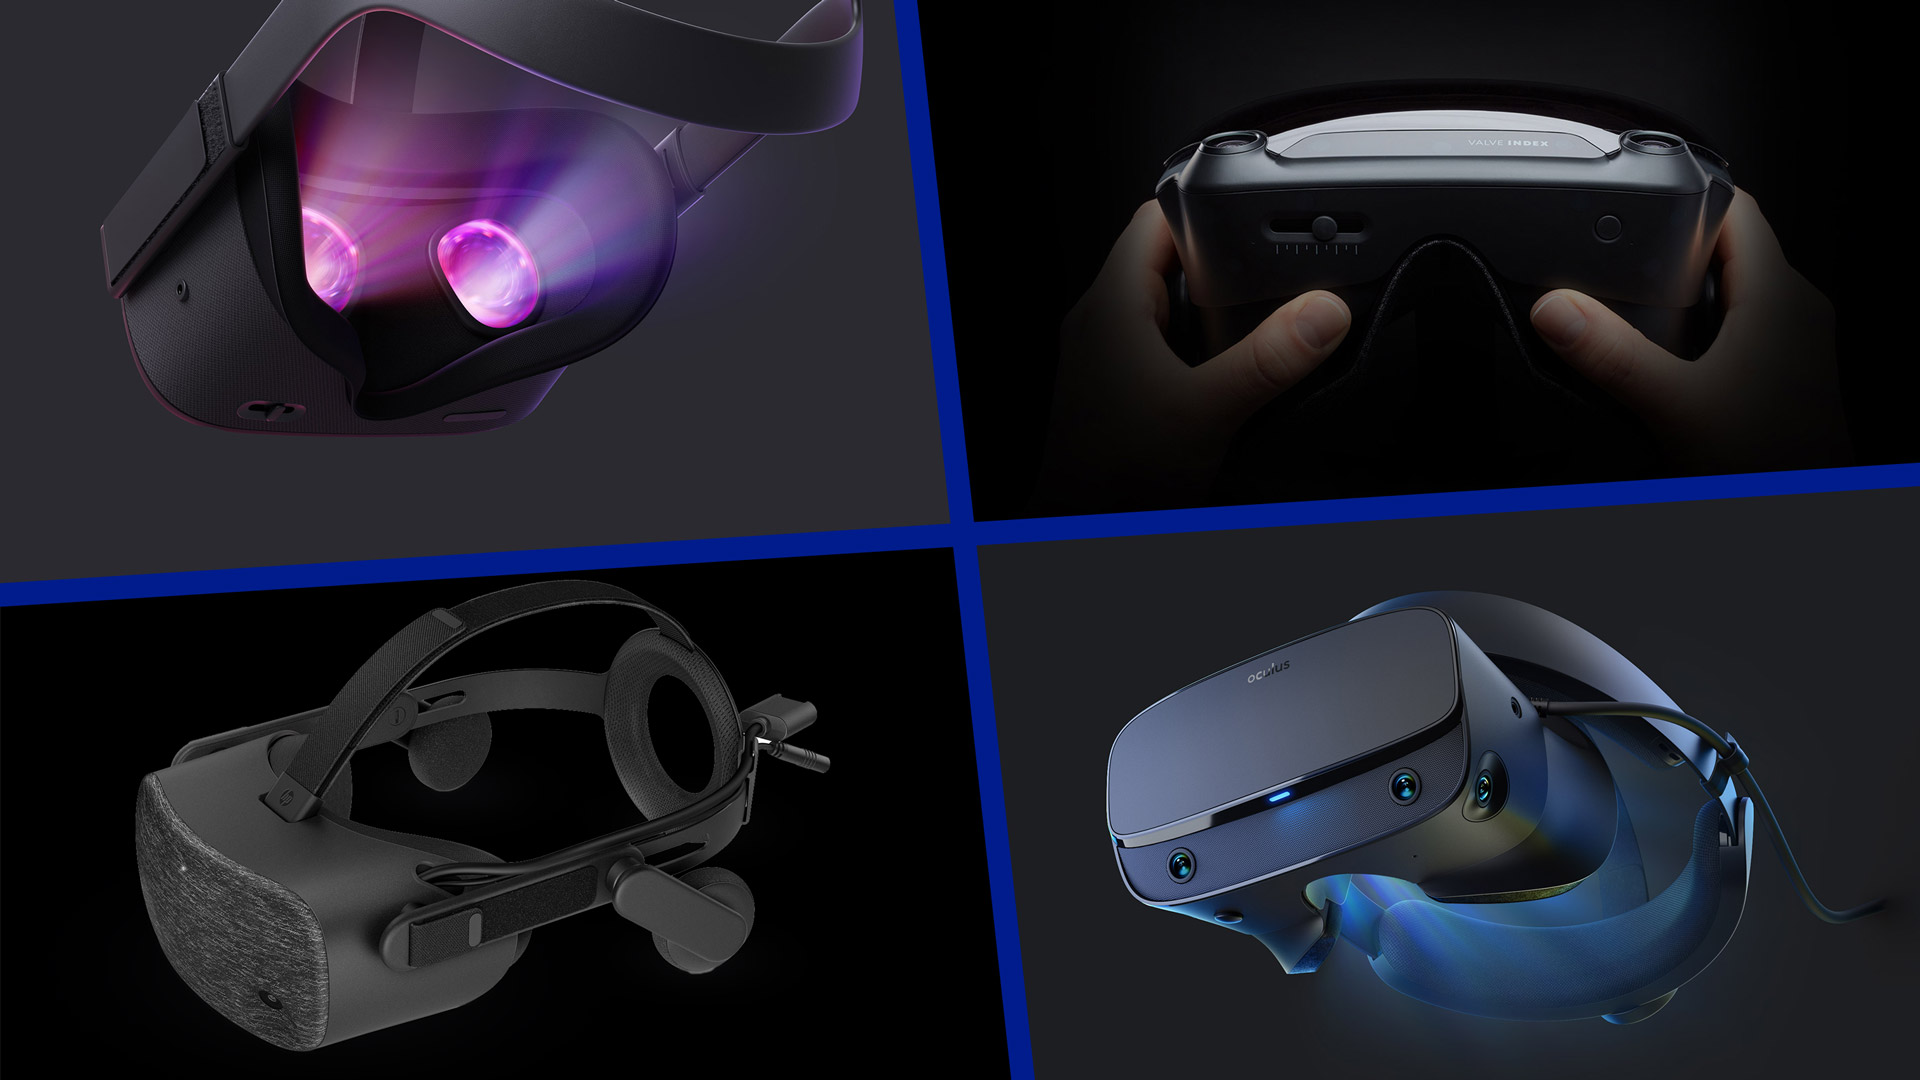 The Simple Guide to Oculus Quest, Rift S, HP Reverb, and Valve Index